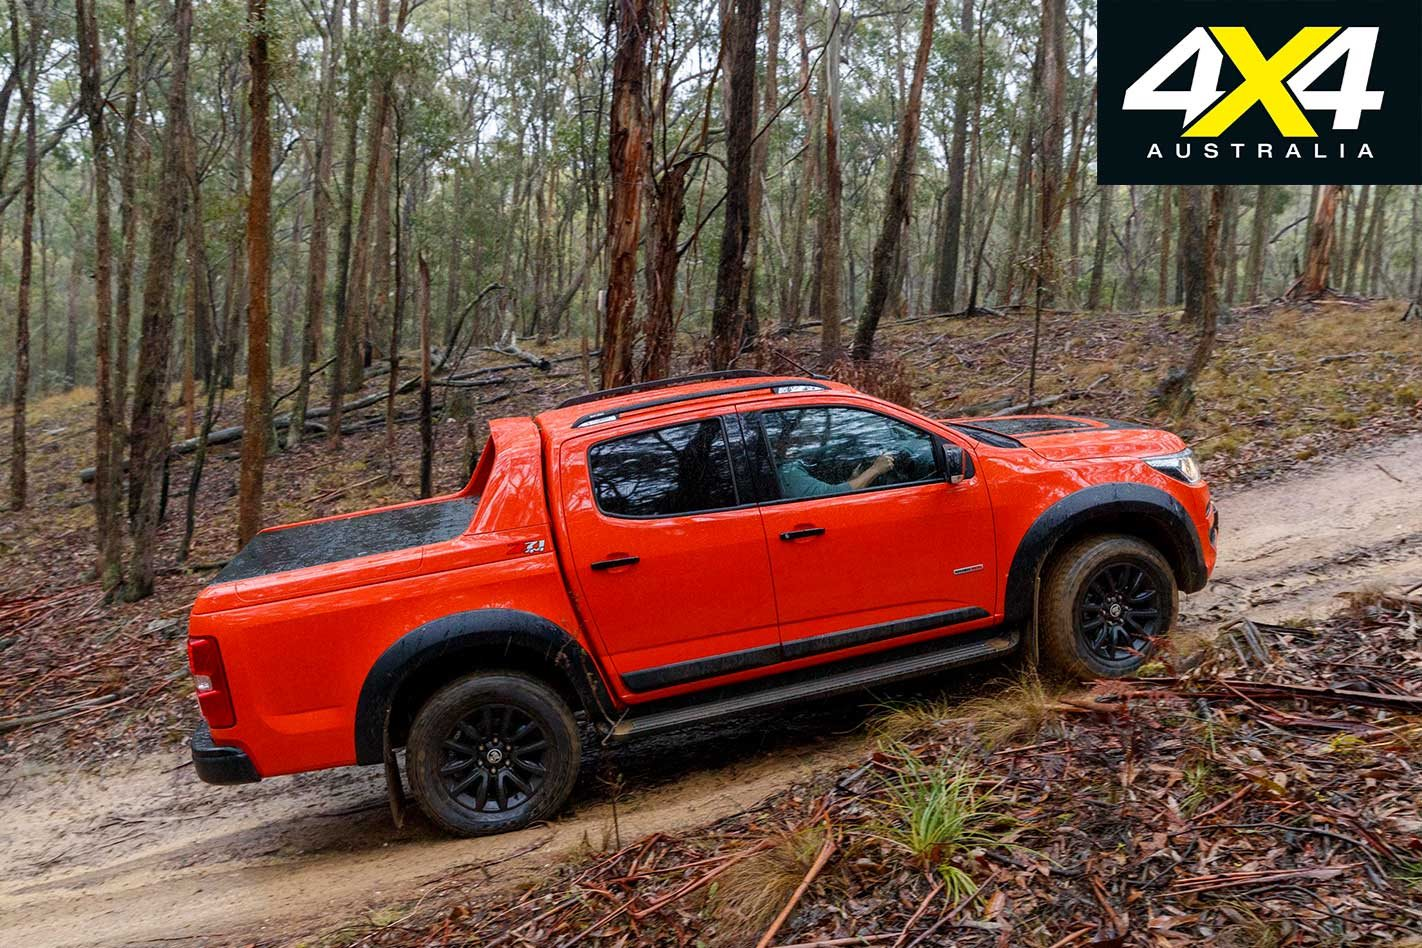 2020 Holden Colorado First 4x4 Drive Review